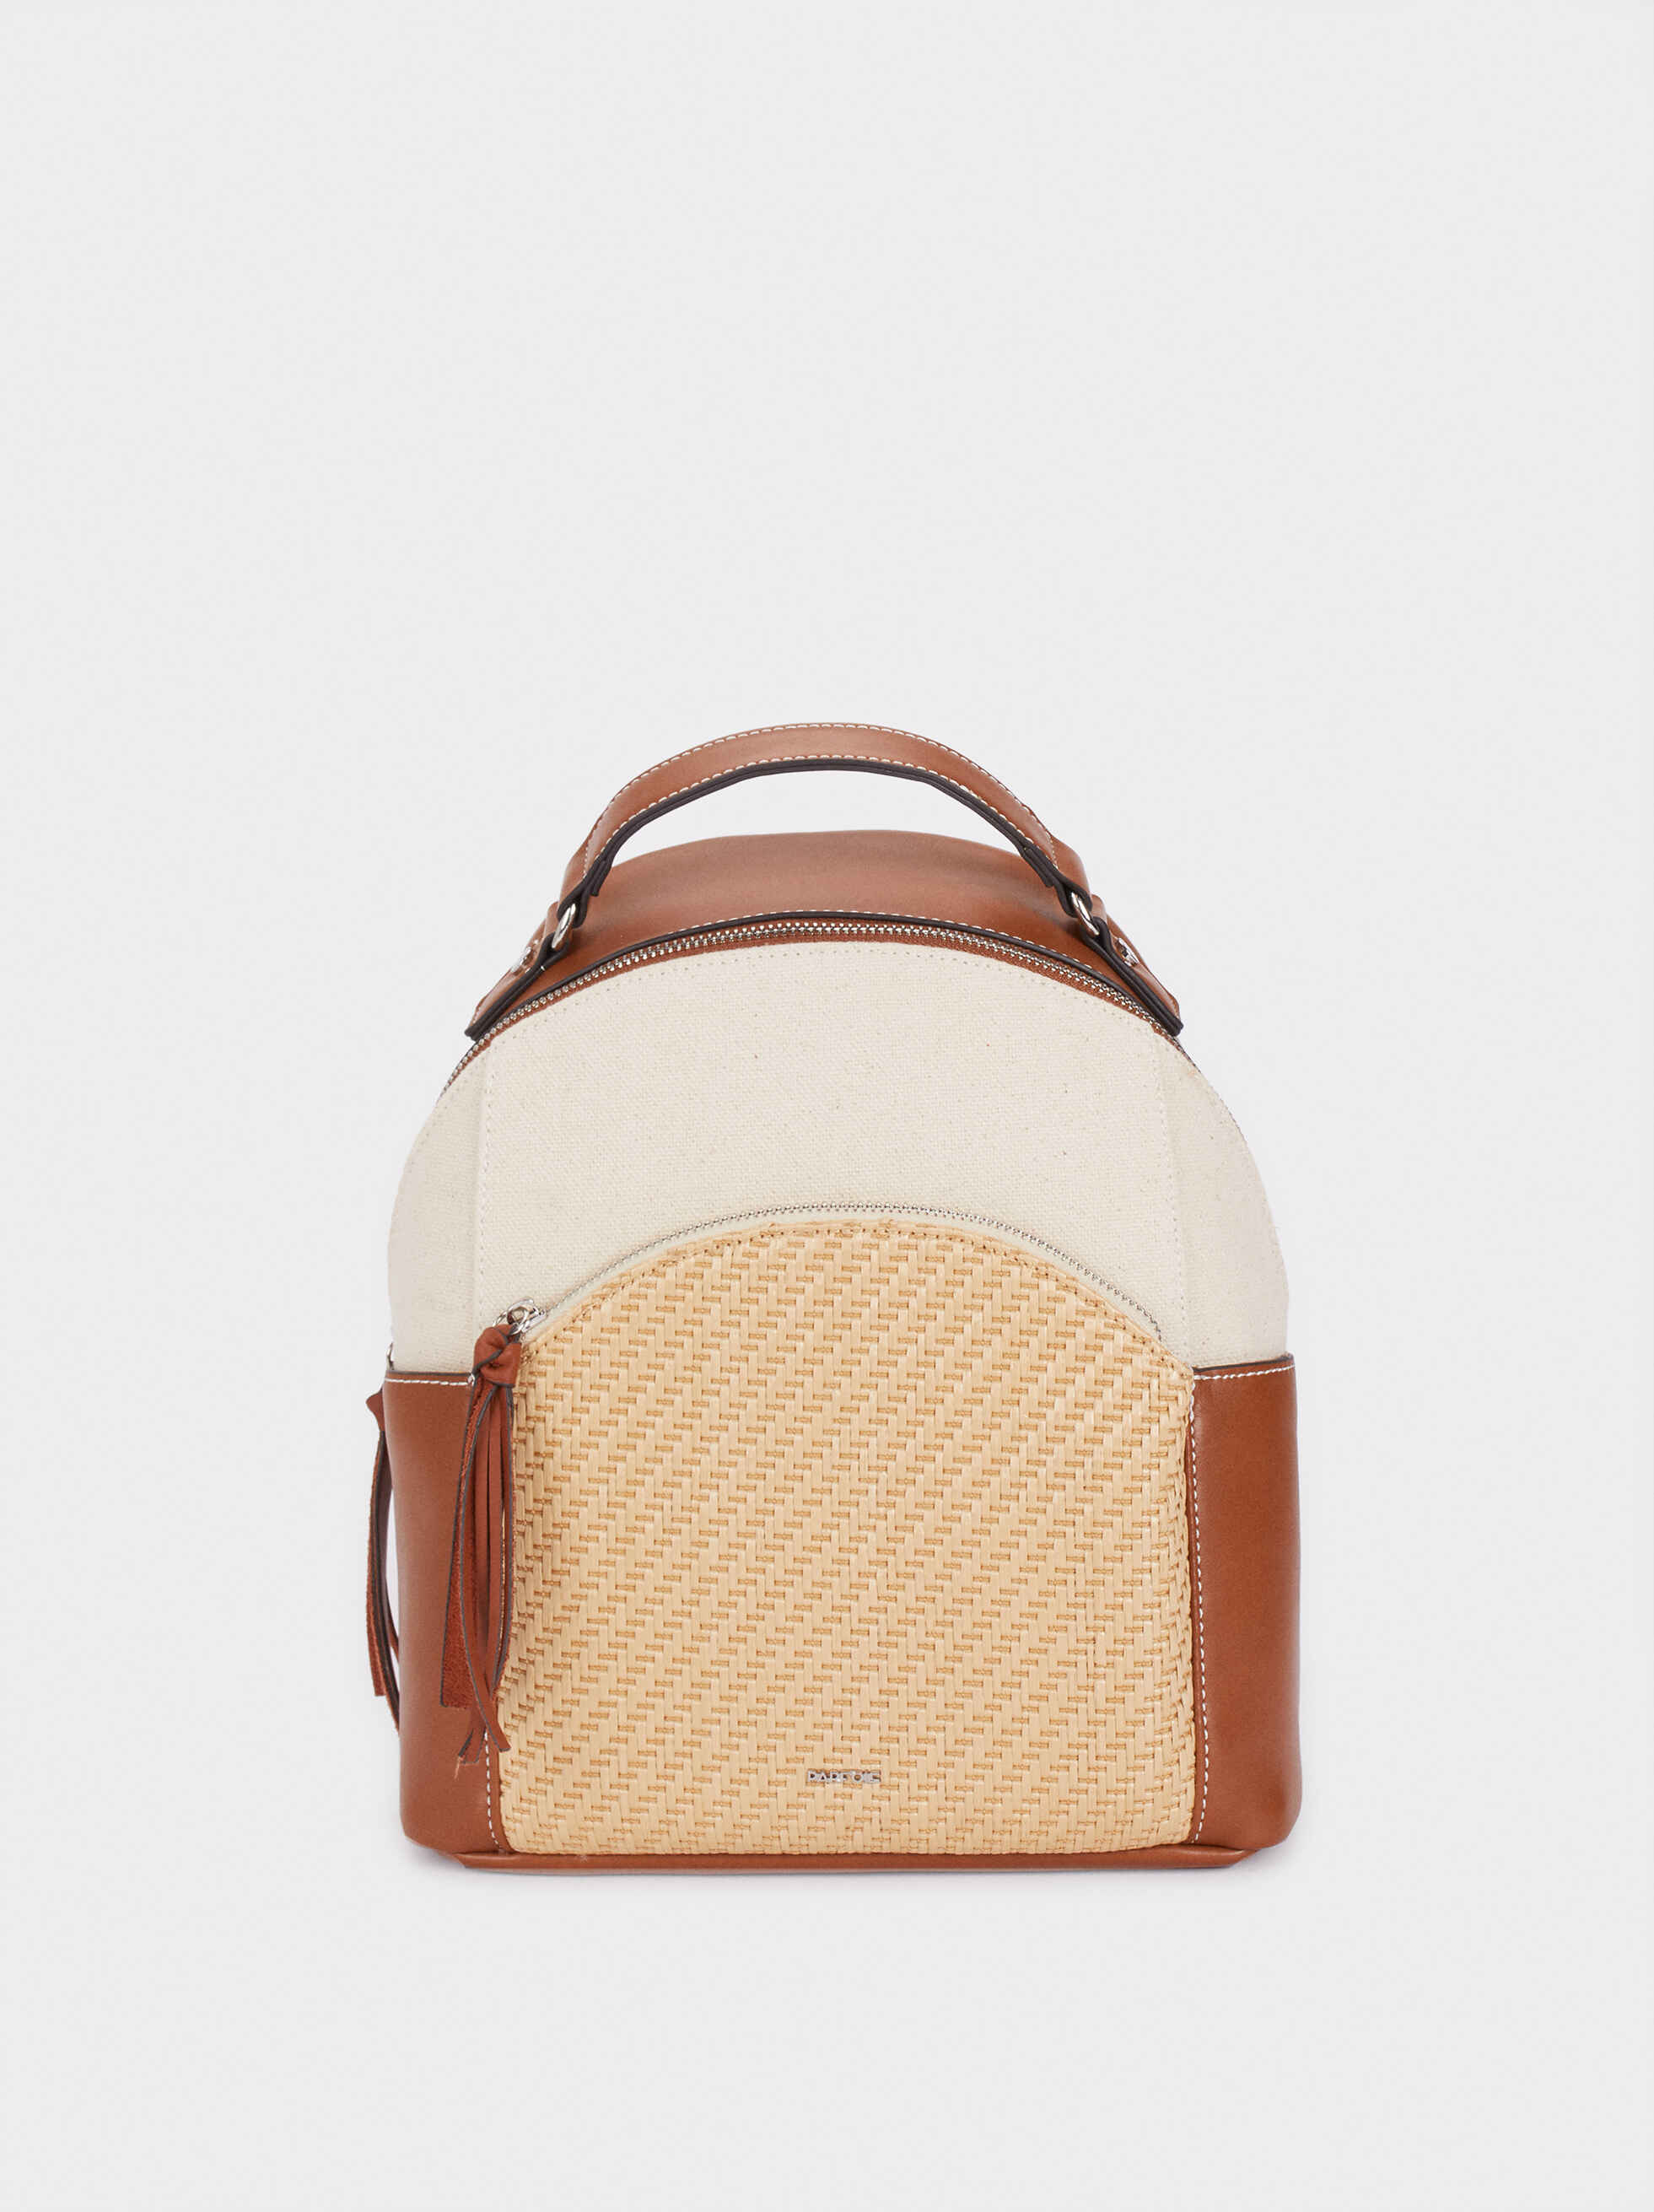 Backpack With Raffia Detailing, Camel, hi-res